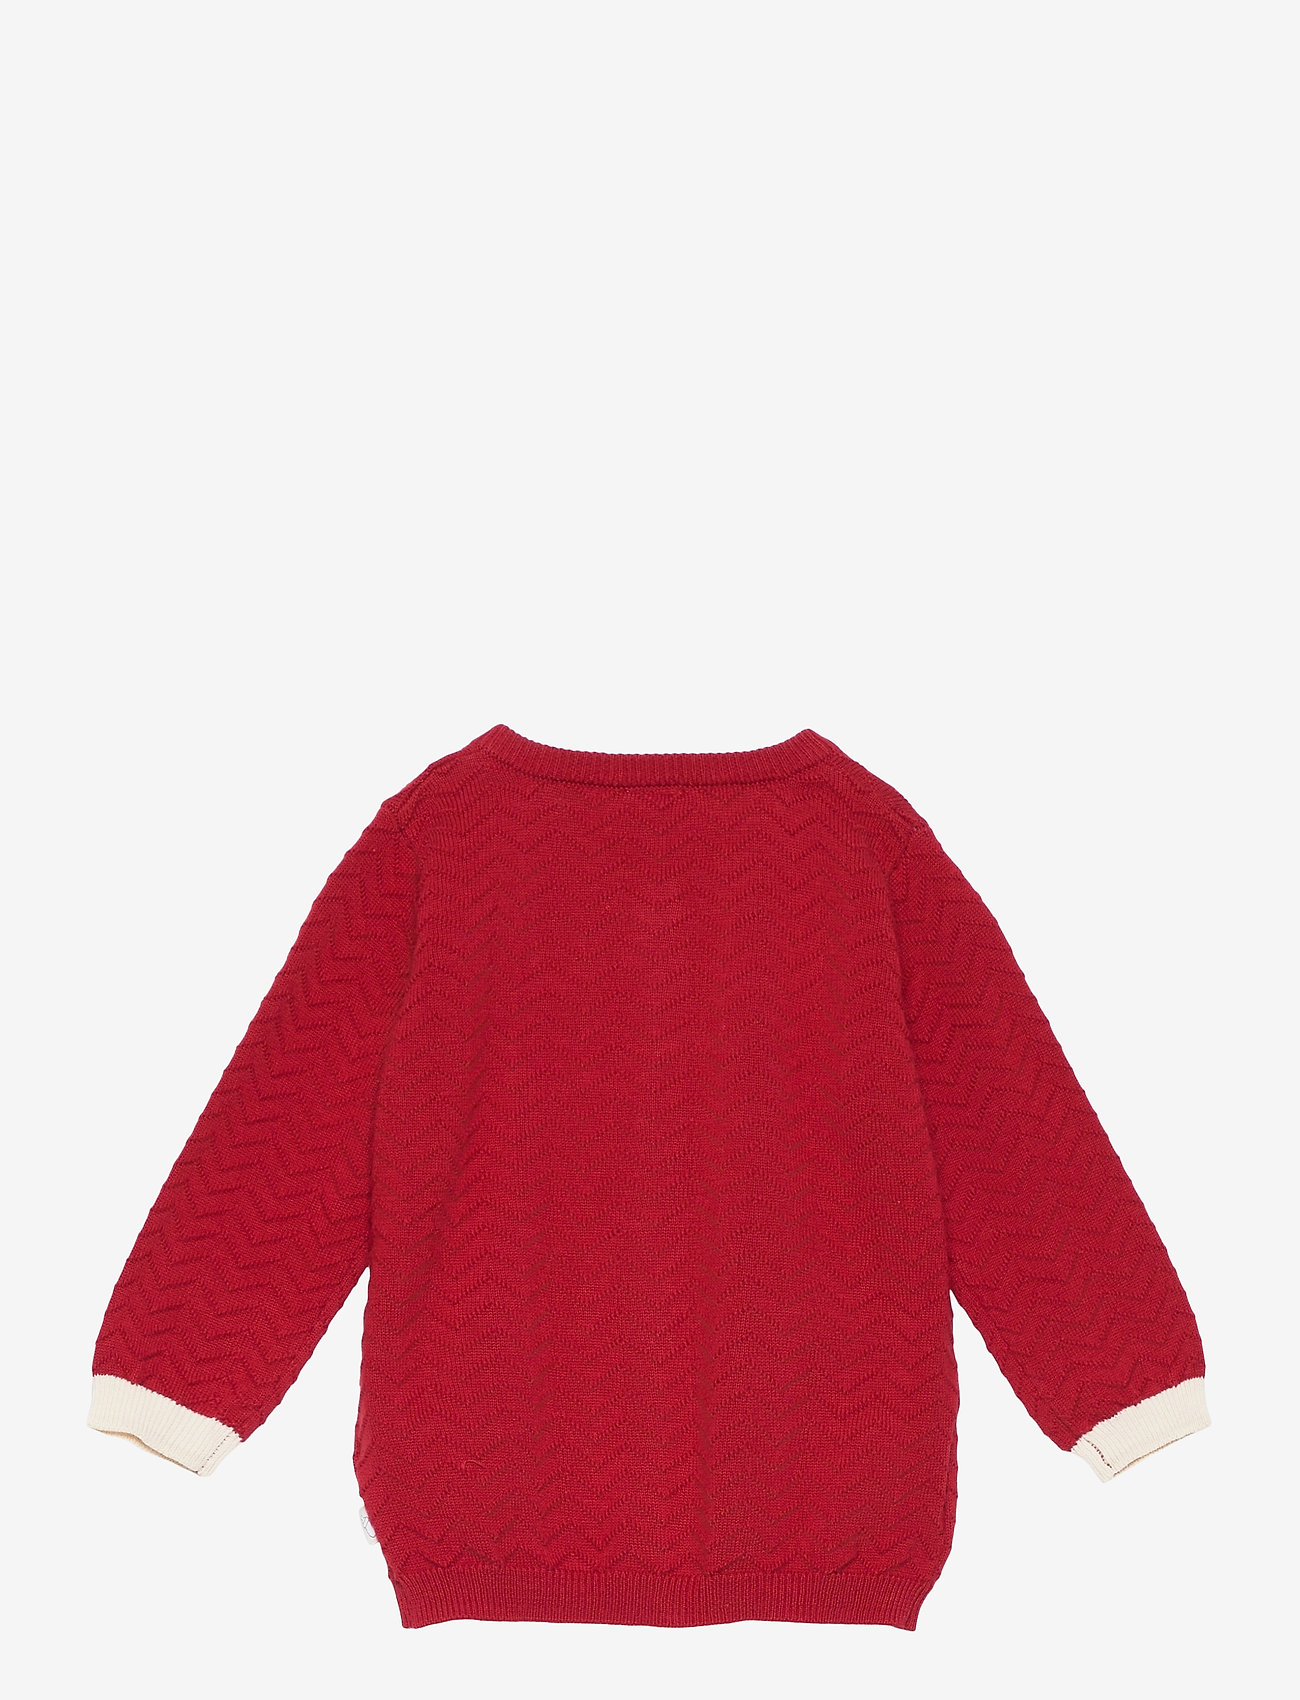 Hust & Claire - Cammi - Cardigan - gilets - rio red - 1